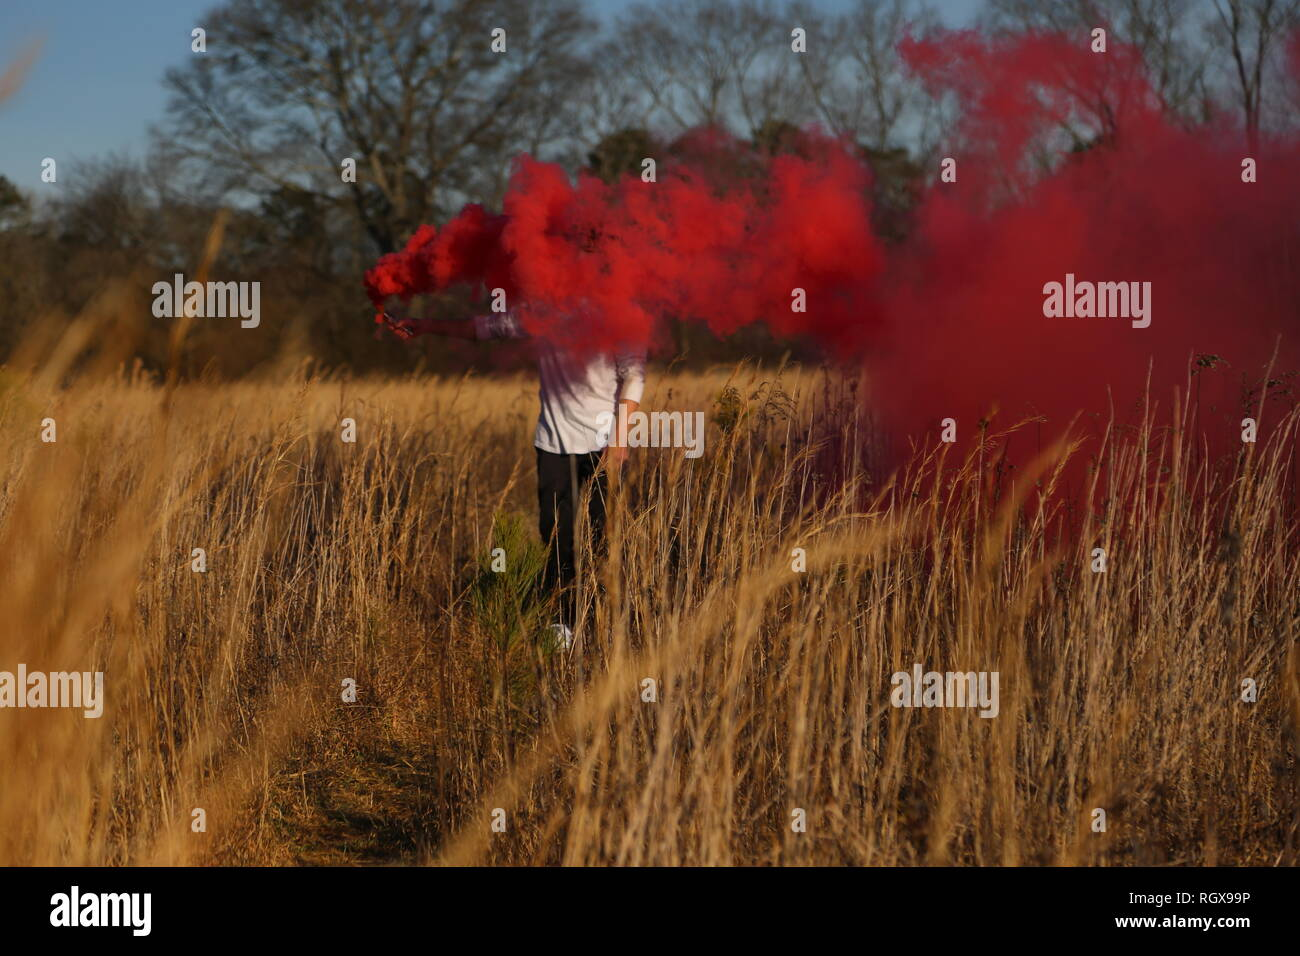 Smoke Photography in a wheat field - Stock Image